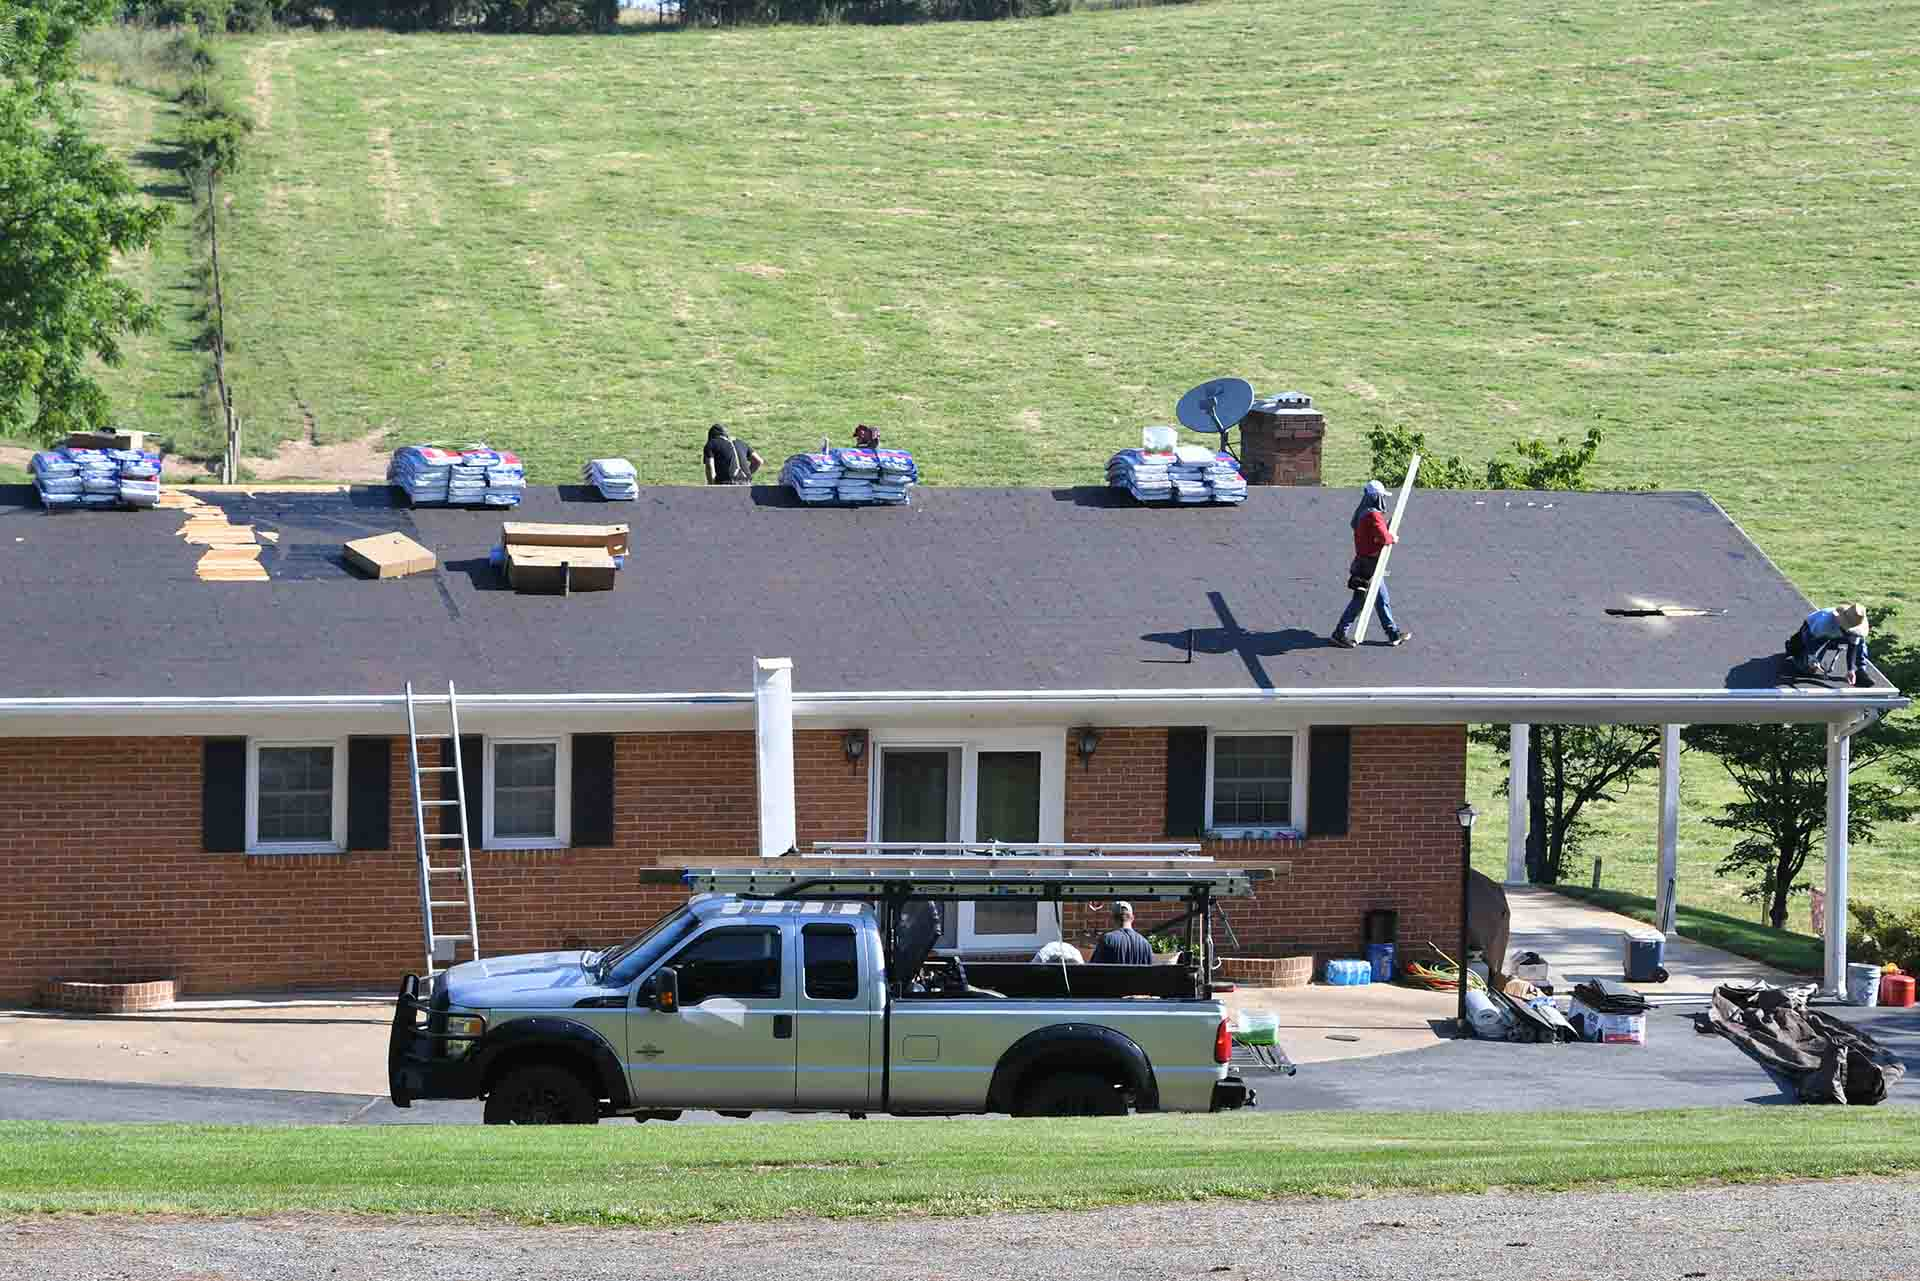 5 types of roofing shingles that boost property value